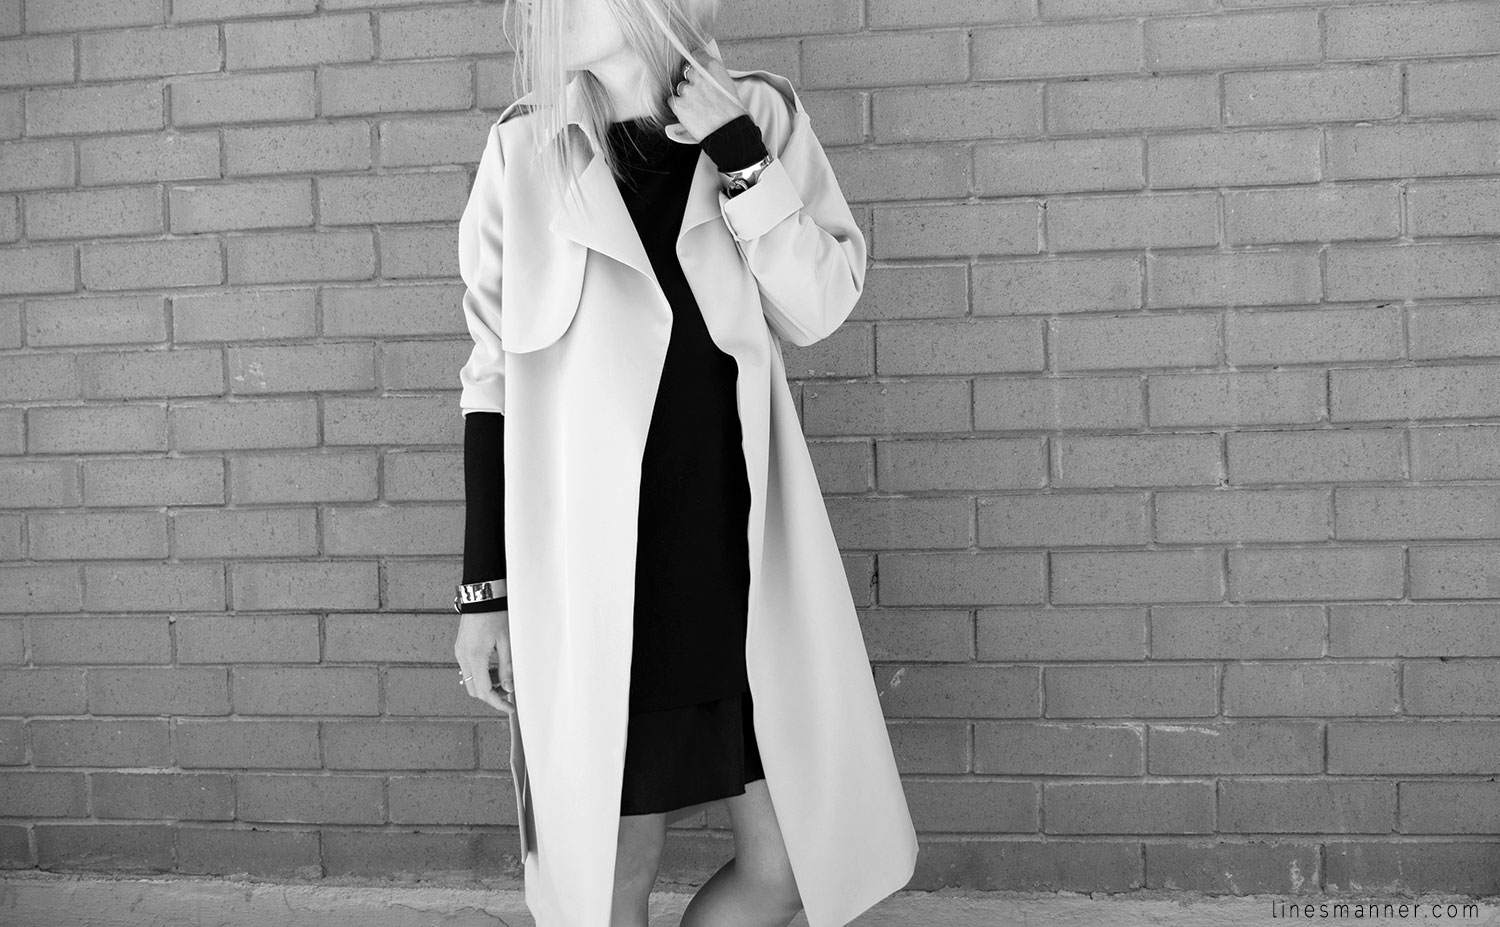 Lines-Manner-Trench-Minimal-Outfits-Fashion-Essentials-Classics-Timeless-Versatile-Details-Hues-Nonchalance-Elegance-Casual-Effortless-10